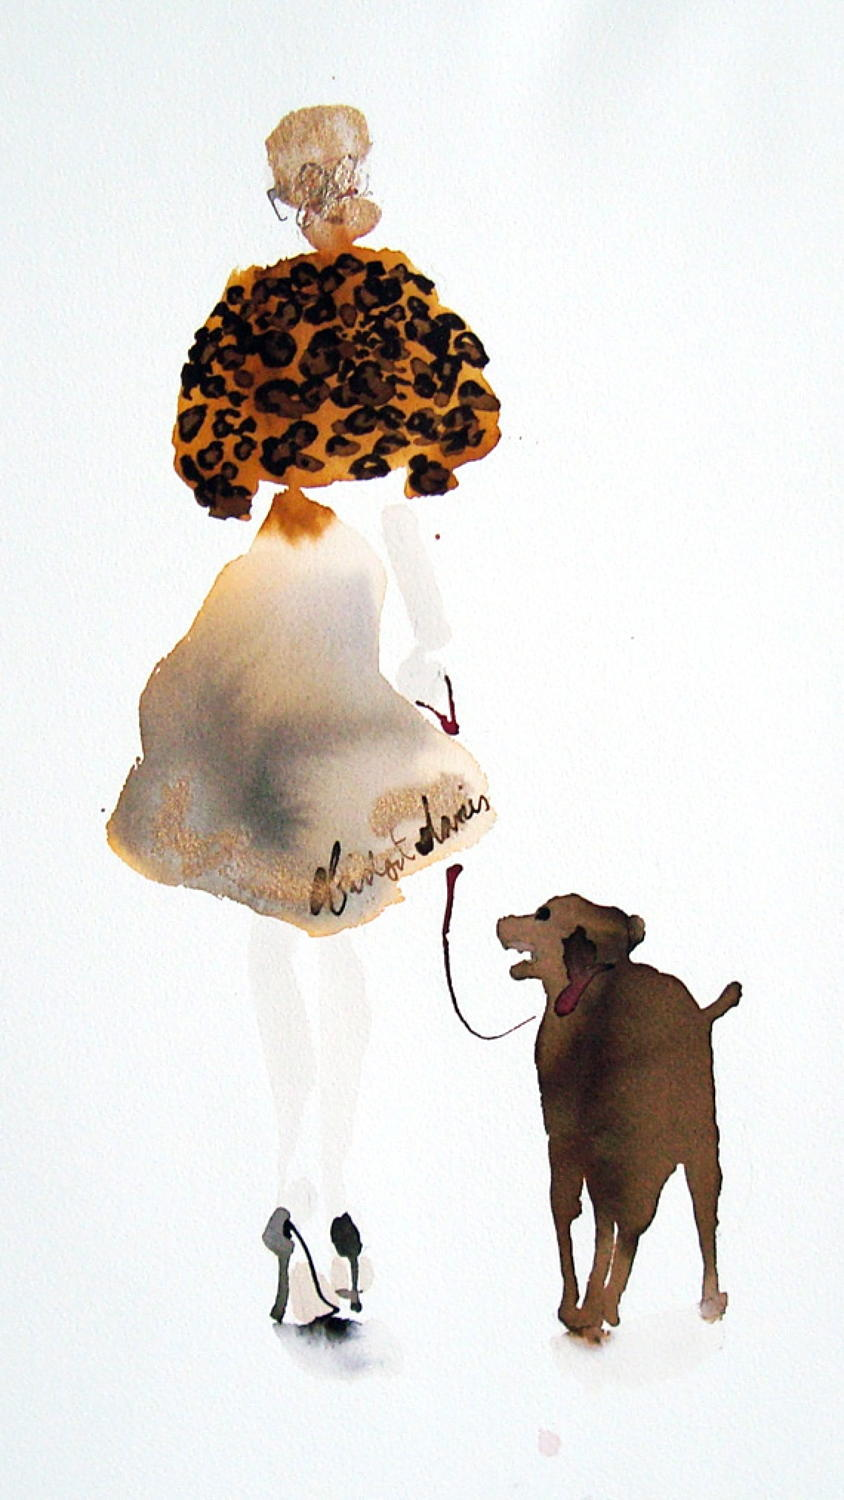 Walking the Dog - Leopard Coat